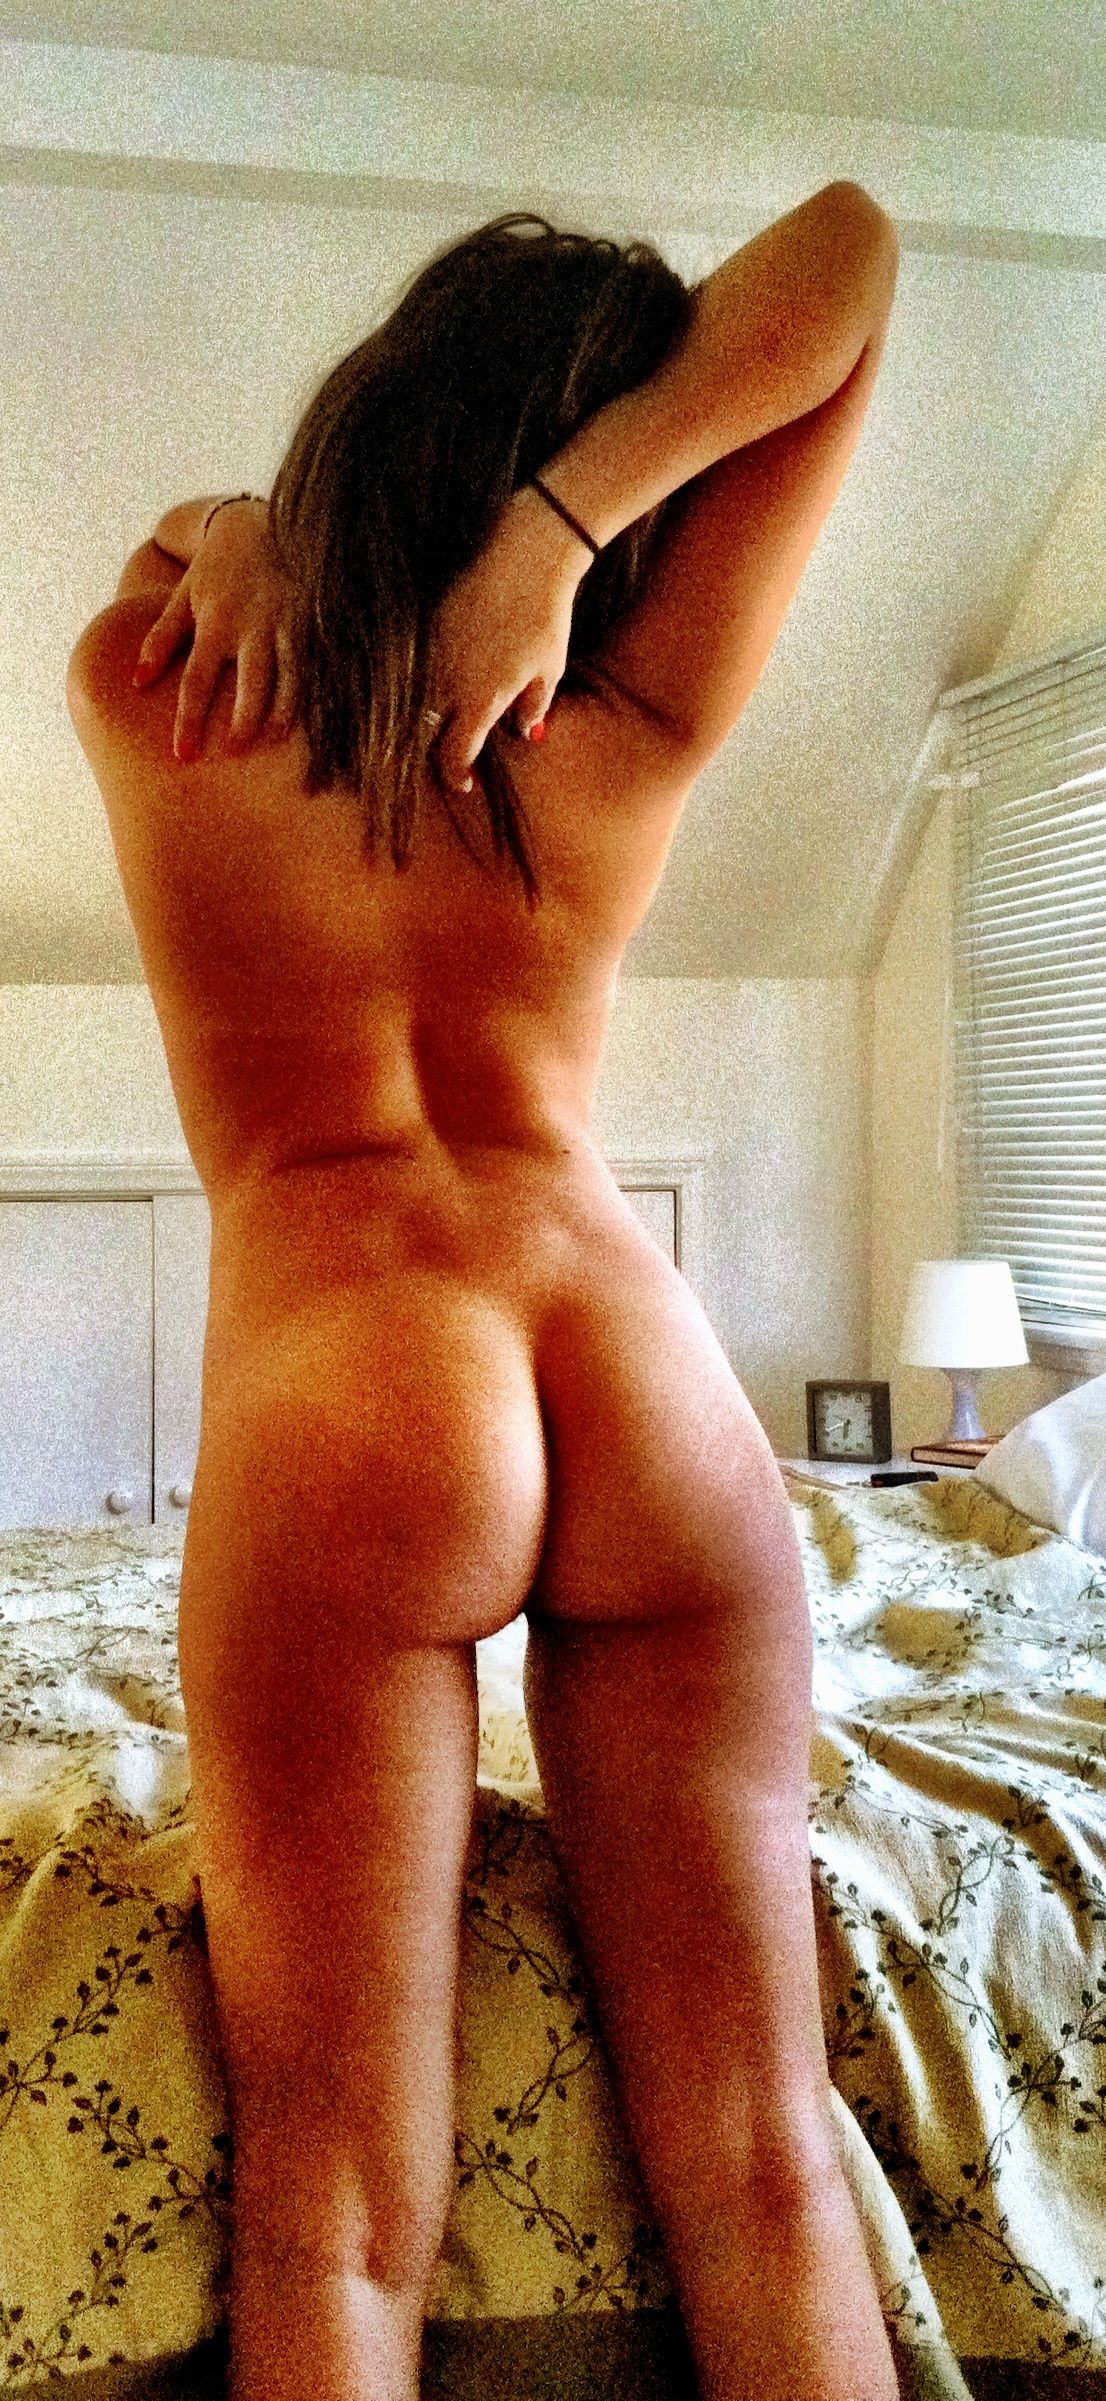 Alexandra-Chando-Leaked-18-thefappening.nuf4072.jpg